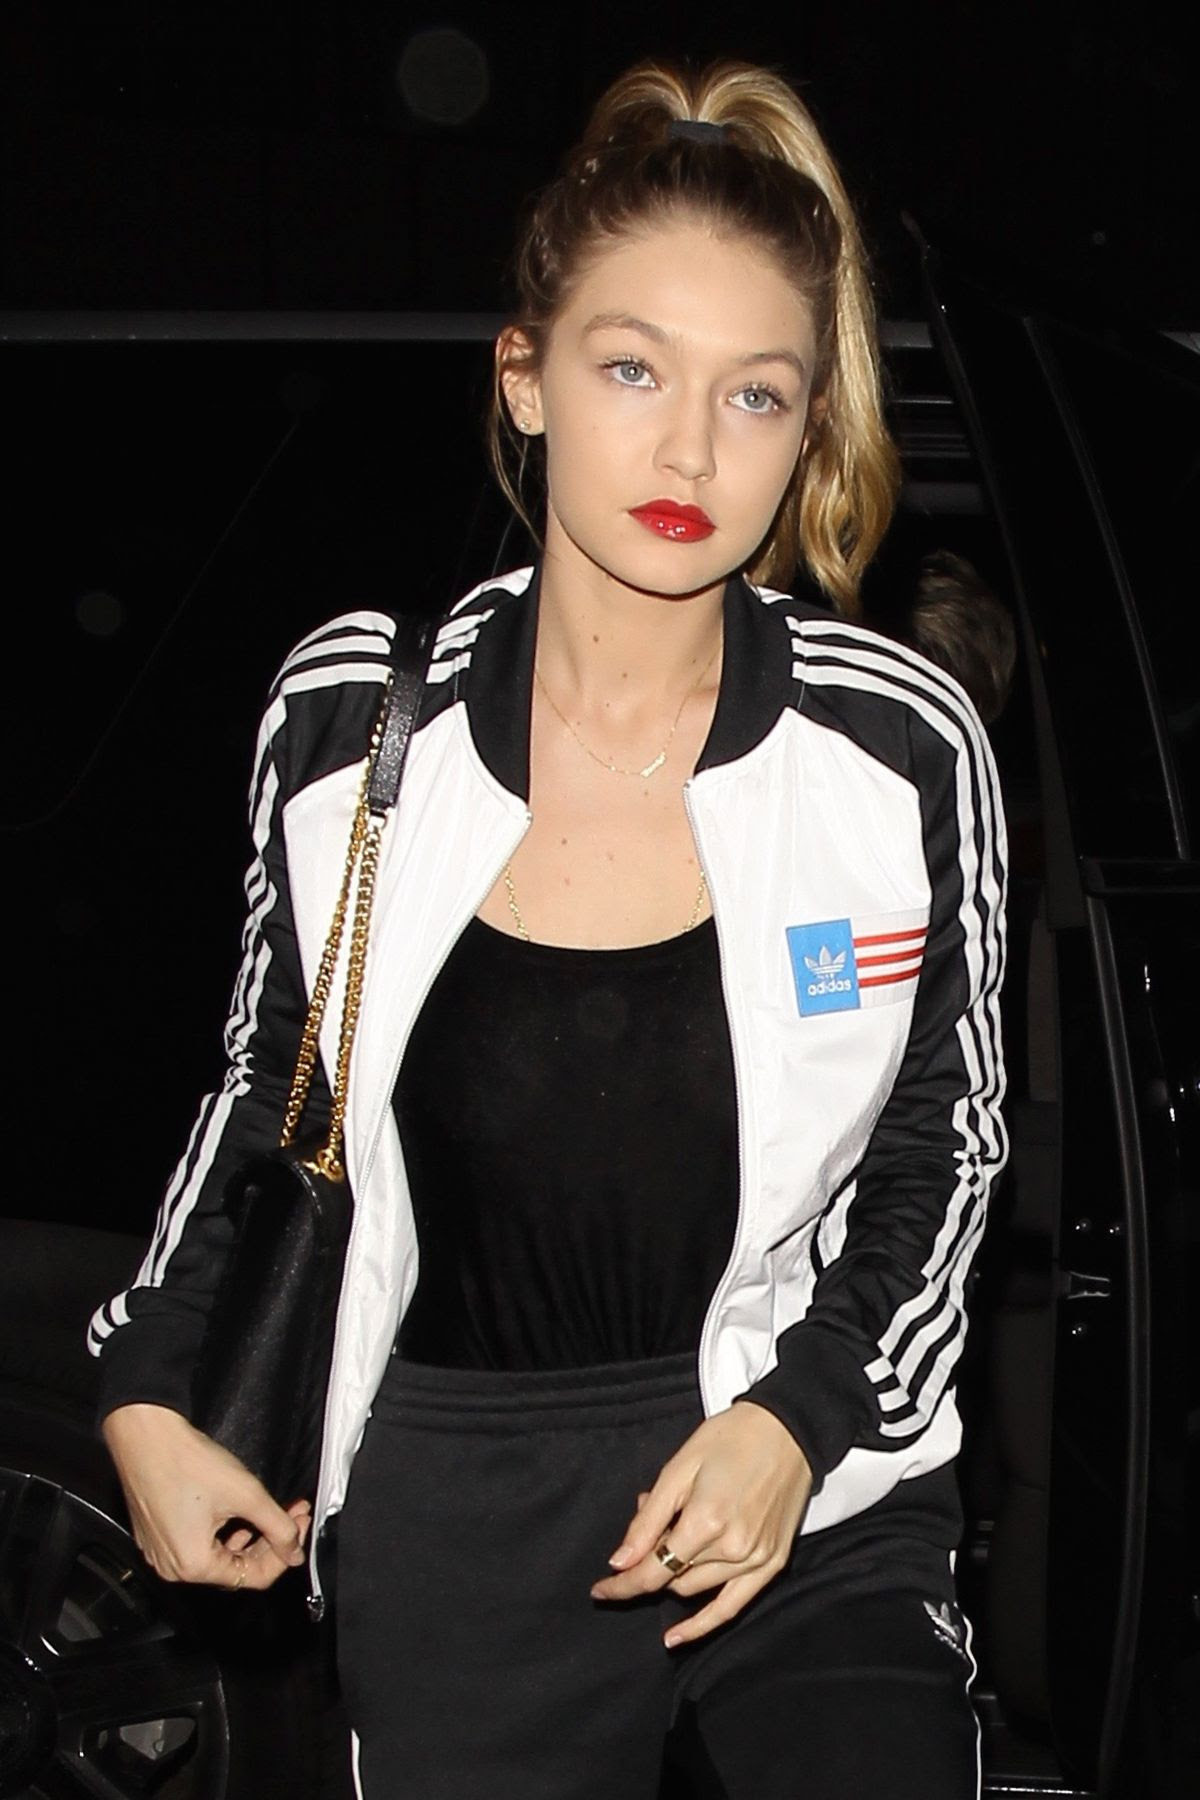 GIGI HADID Arrives at Nice Guy in West Hollywood 02/03/2016